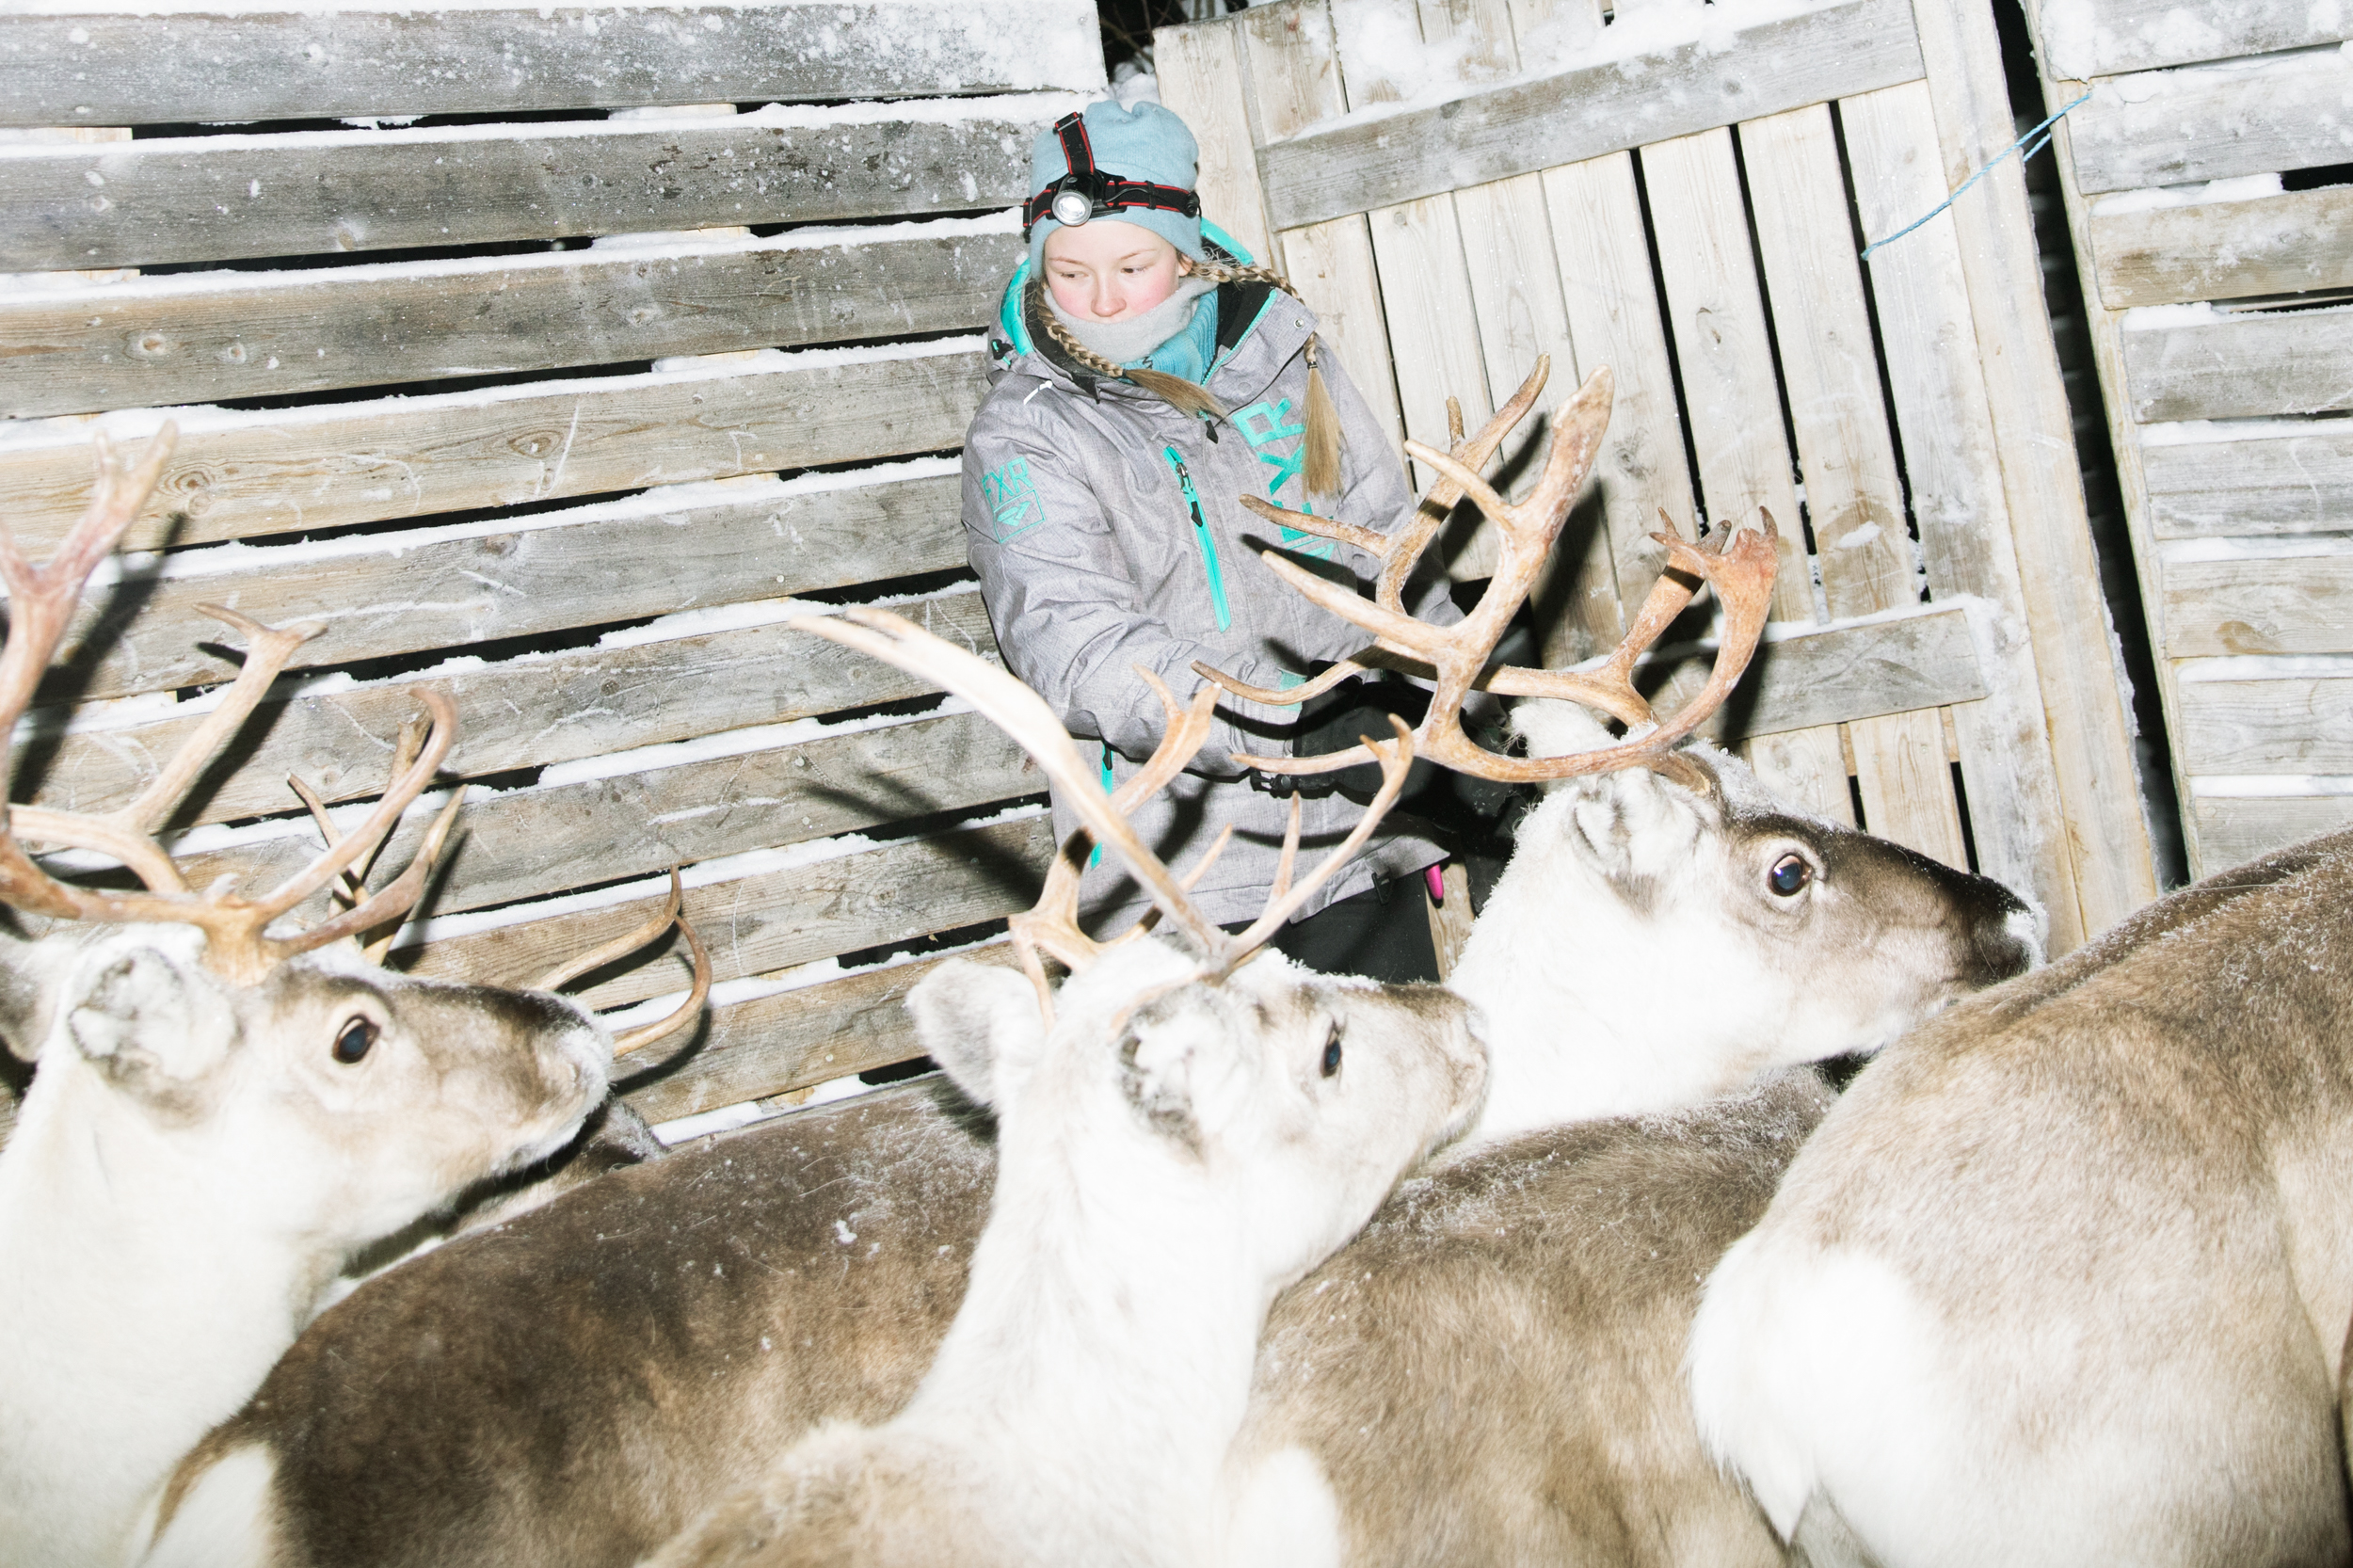 Inside the Snowy World of Scandinavia's Enduring Indigenous Culture